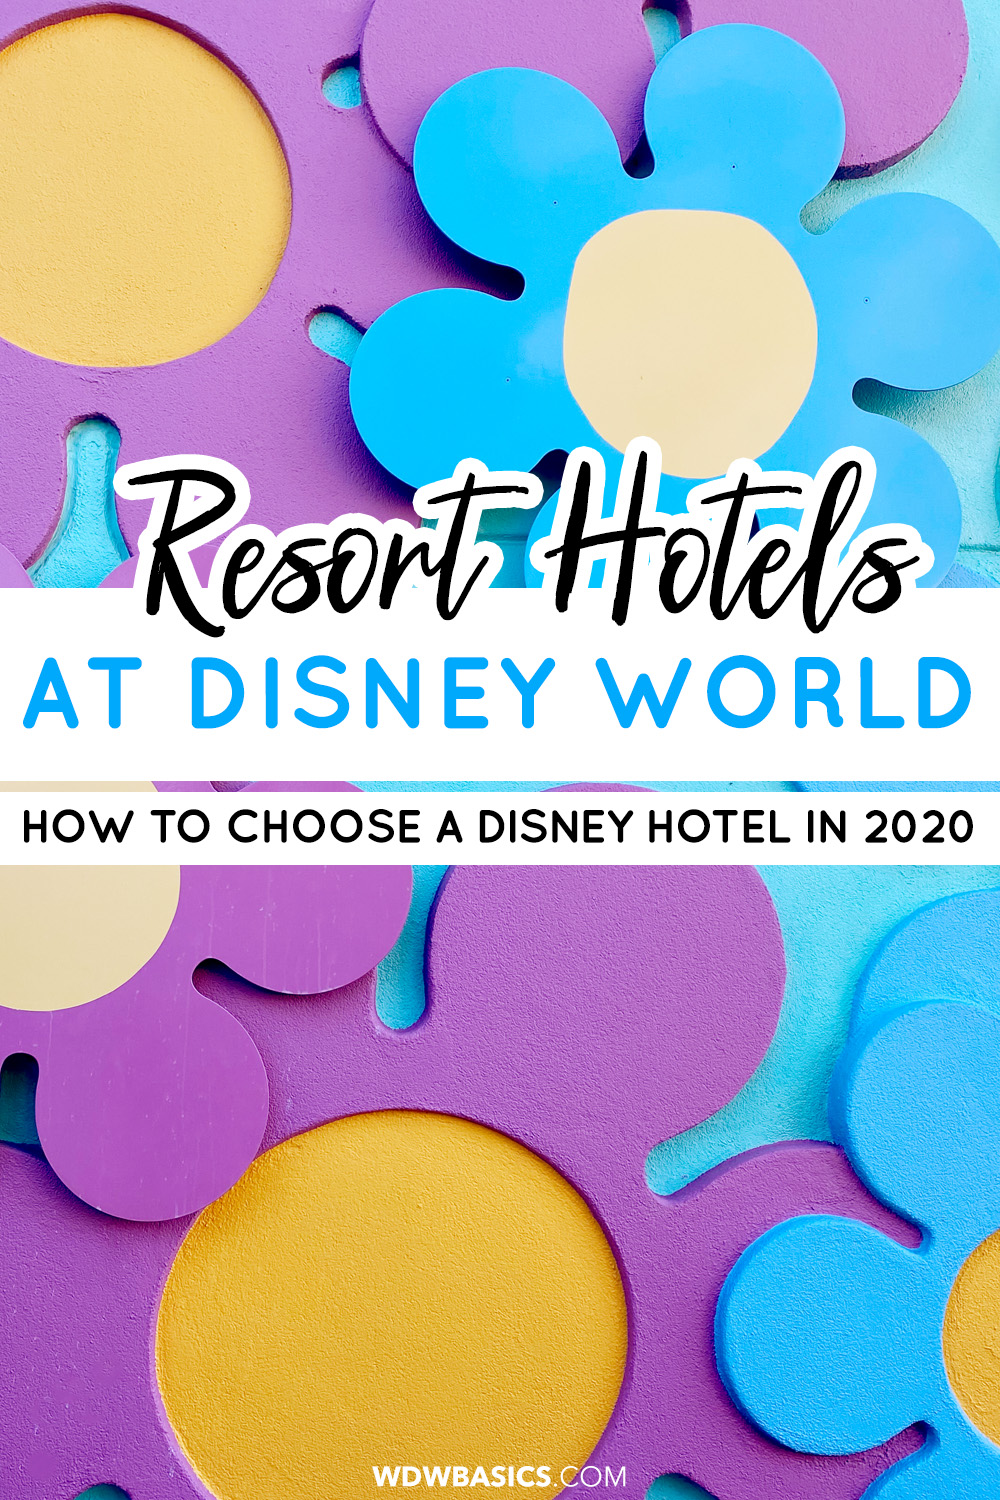 How to choose a Disney hotel in 2020